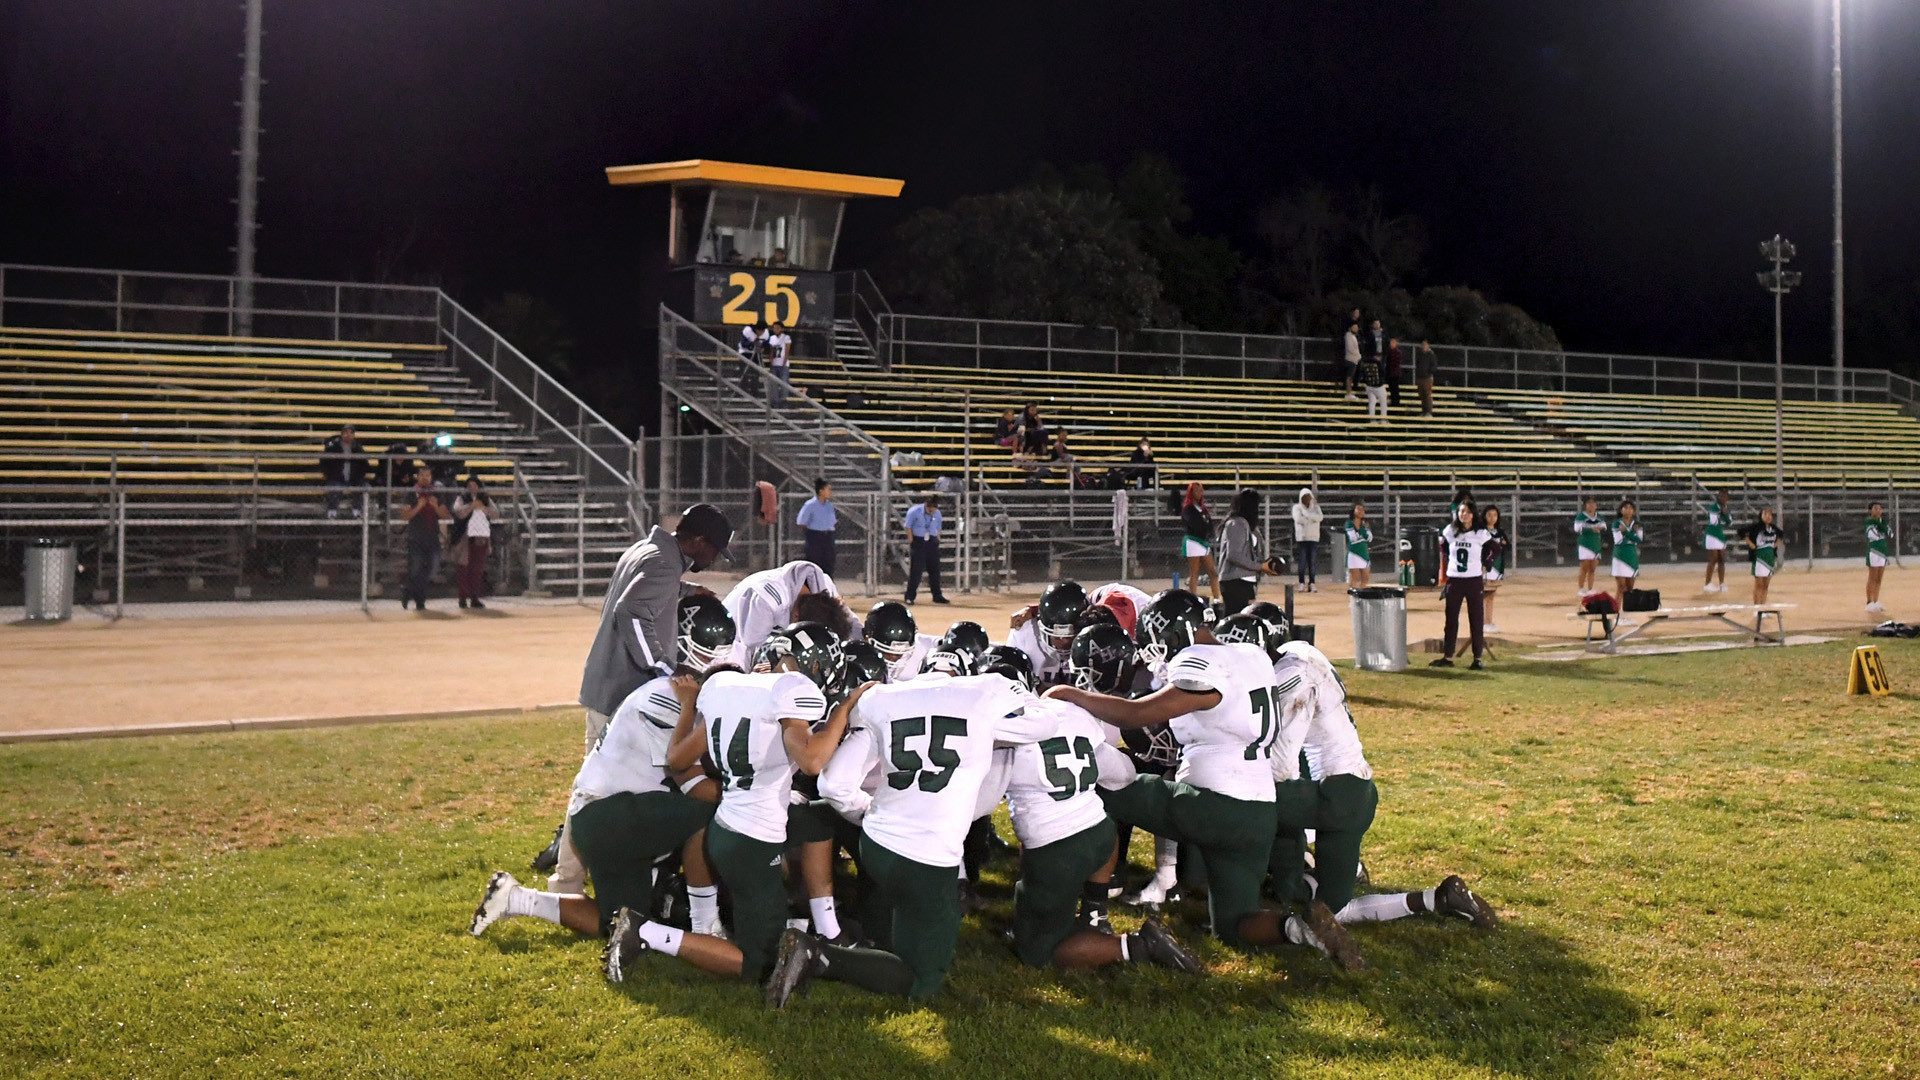 Band of brothers: 0-12 Hawkins High football team refuses to quit